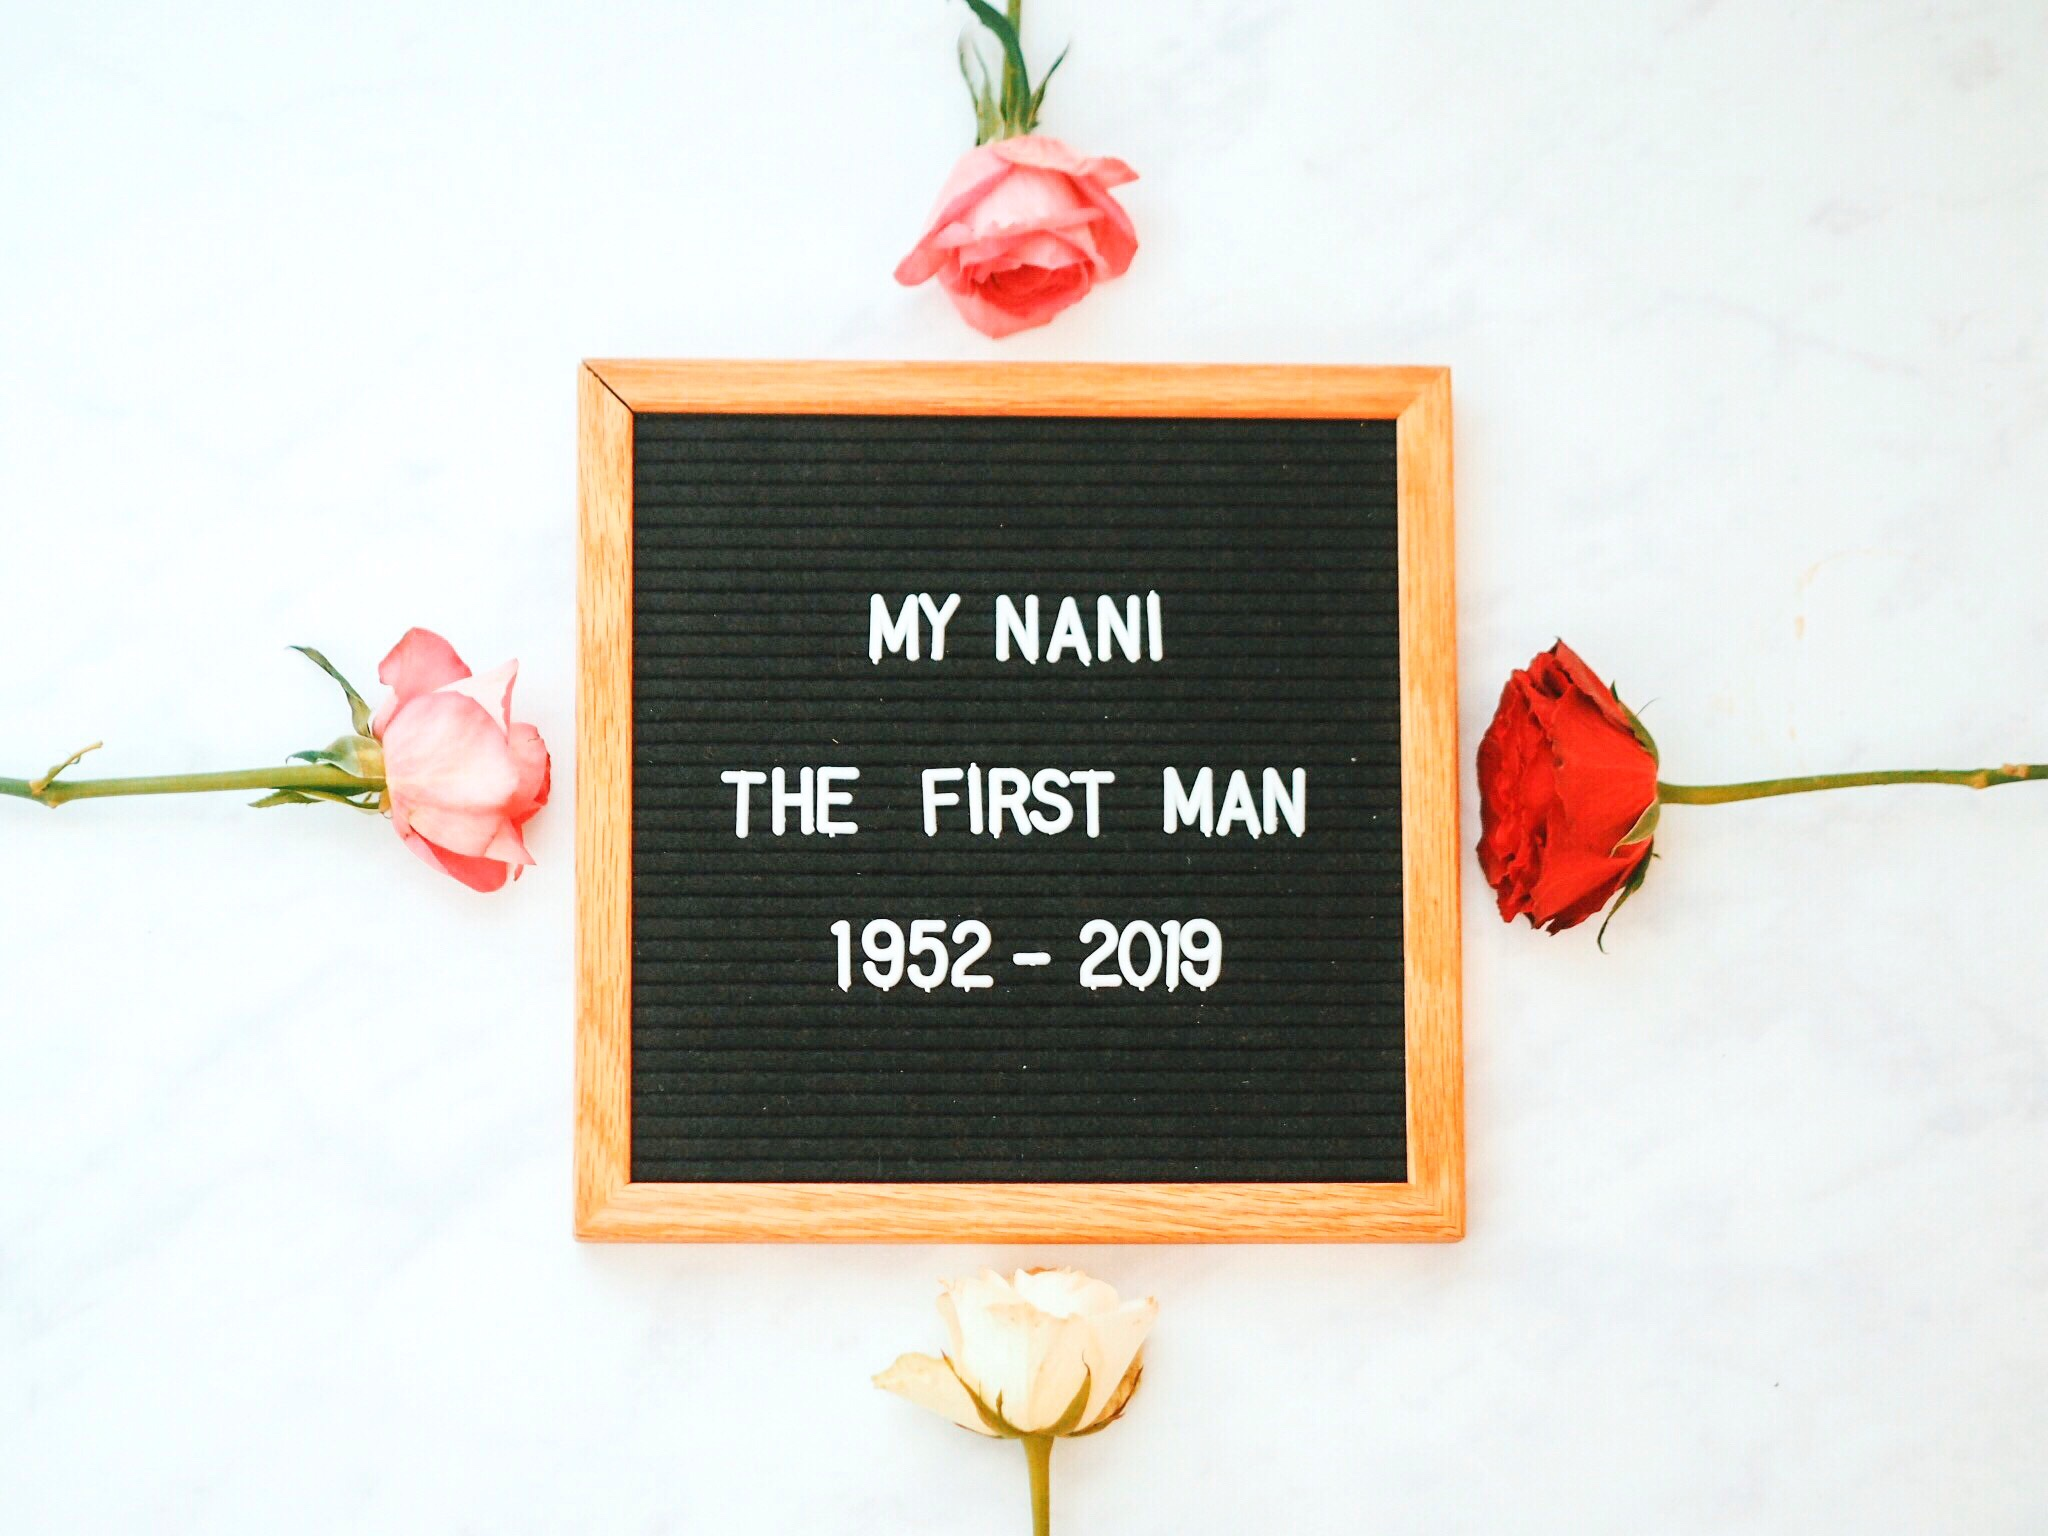 My Nani, The First Man